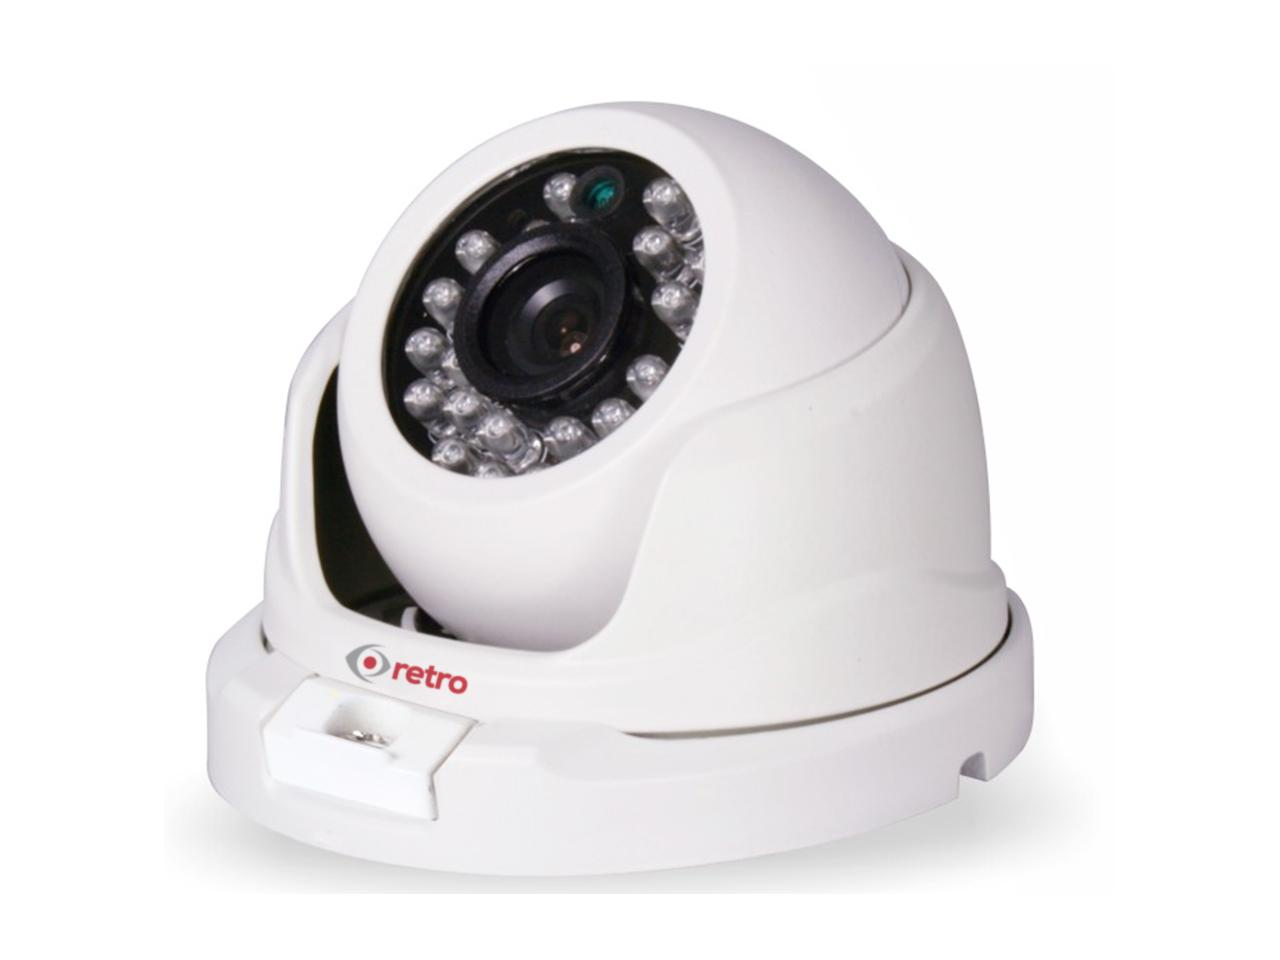 RT-4210 XVI 2.0 MEGAPİKSEL 1080P  IR METAL DOME AHD KAMERA 3.6MM